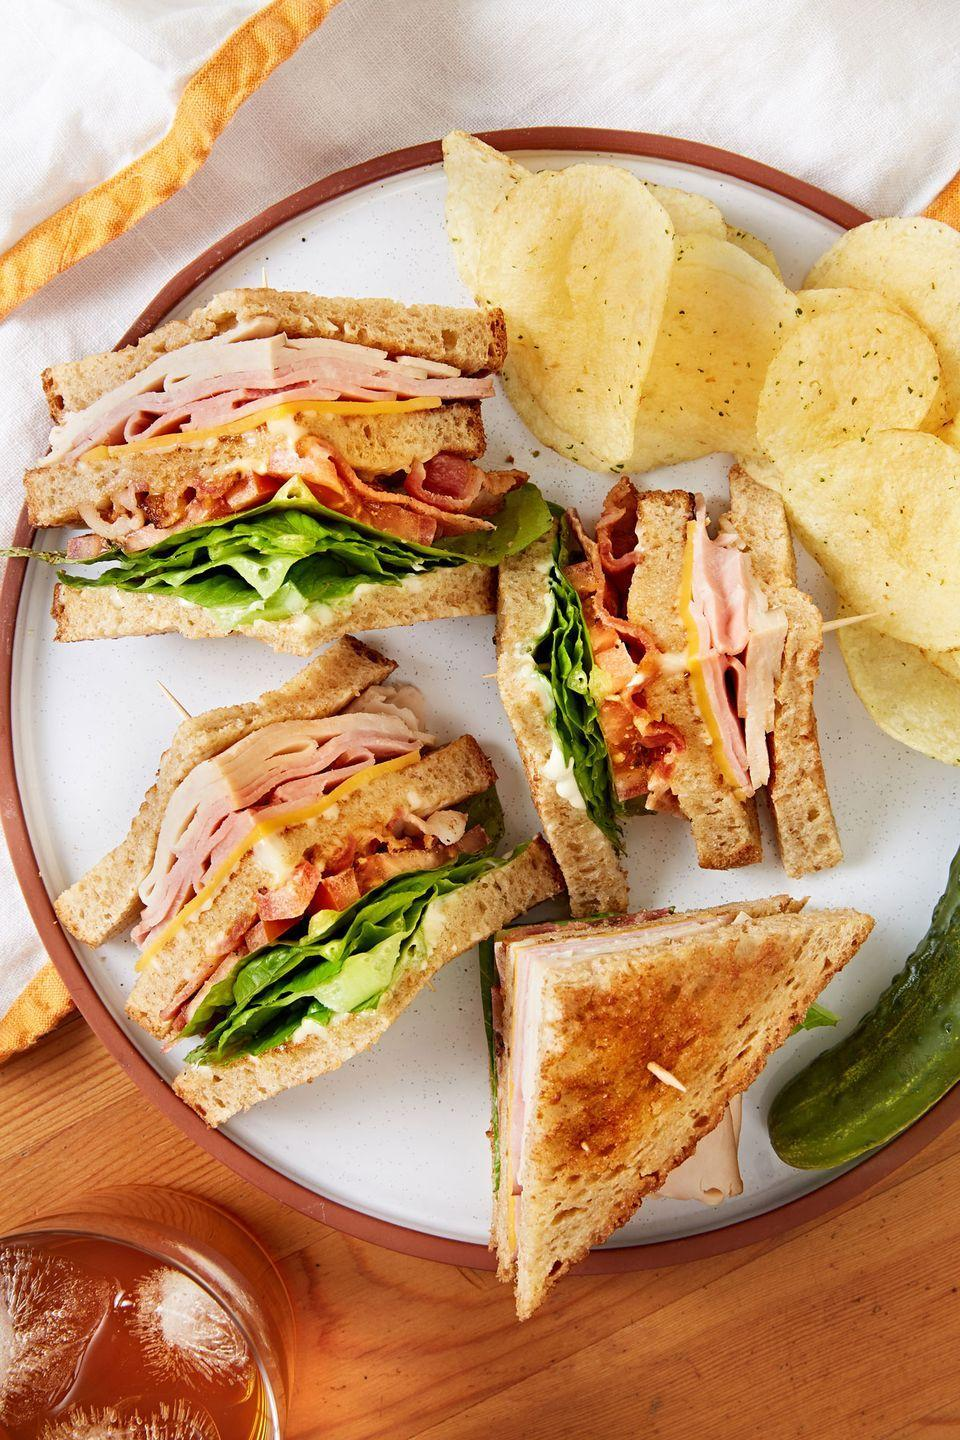 """<p>With ham, turkey, bacon and 3 slices of bread, the club sandwich is the best sandwich of all time. </p><p>Get the recipe from <a href=""""https://www.delish.com/cooking/recipe-ideas/a32714107/club-sandwich-recipe/"""" rel=""""nofollow noopener"""" target=""""_blank"""" data-ylk=""""slk:Delish"""" class=""""link rapid-noclick-resp"""">Delish</a>.</p>"""